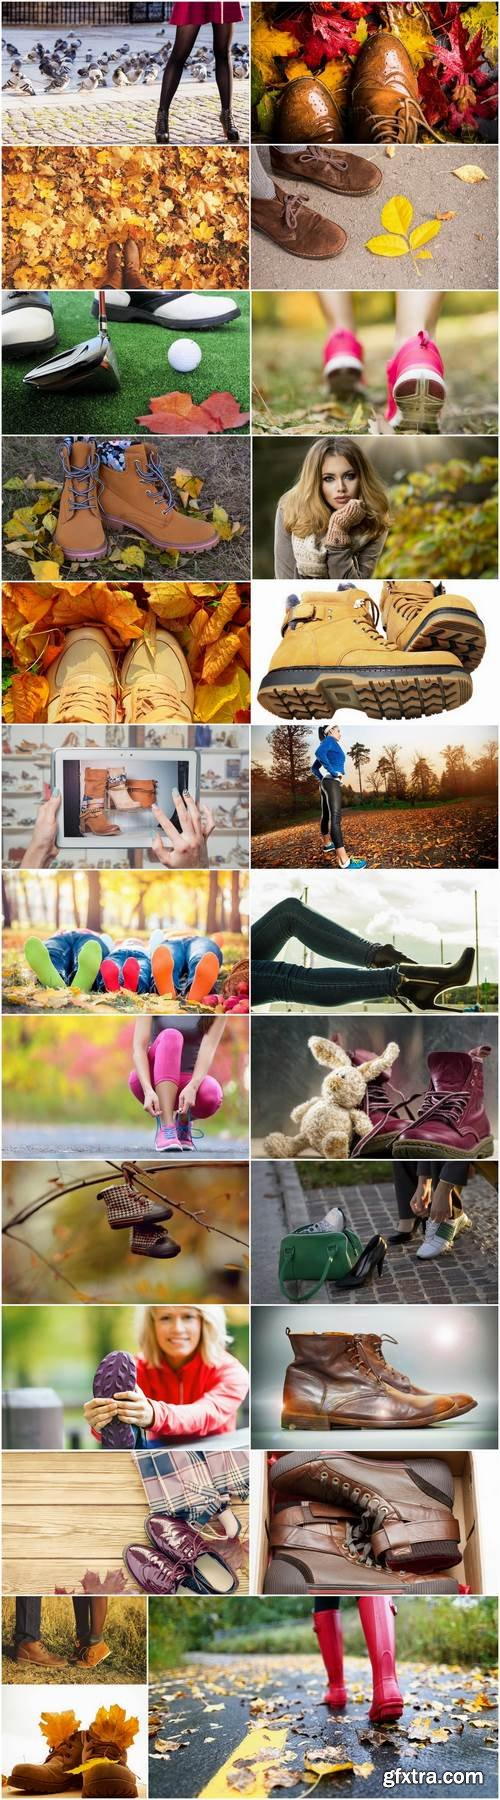 Autumn shoes sneakers boots 25 HQ Jpeg